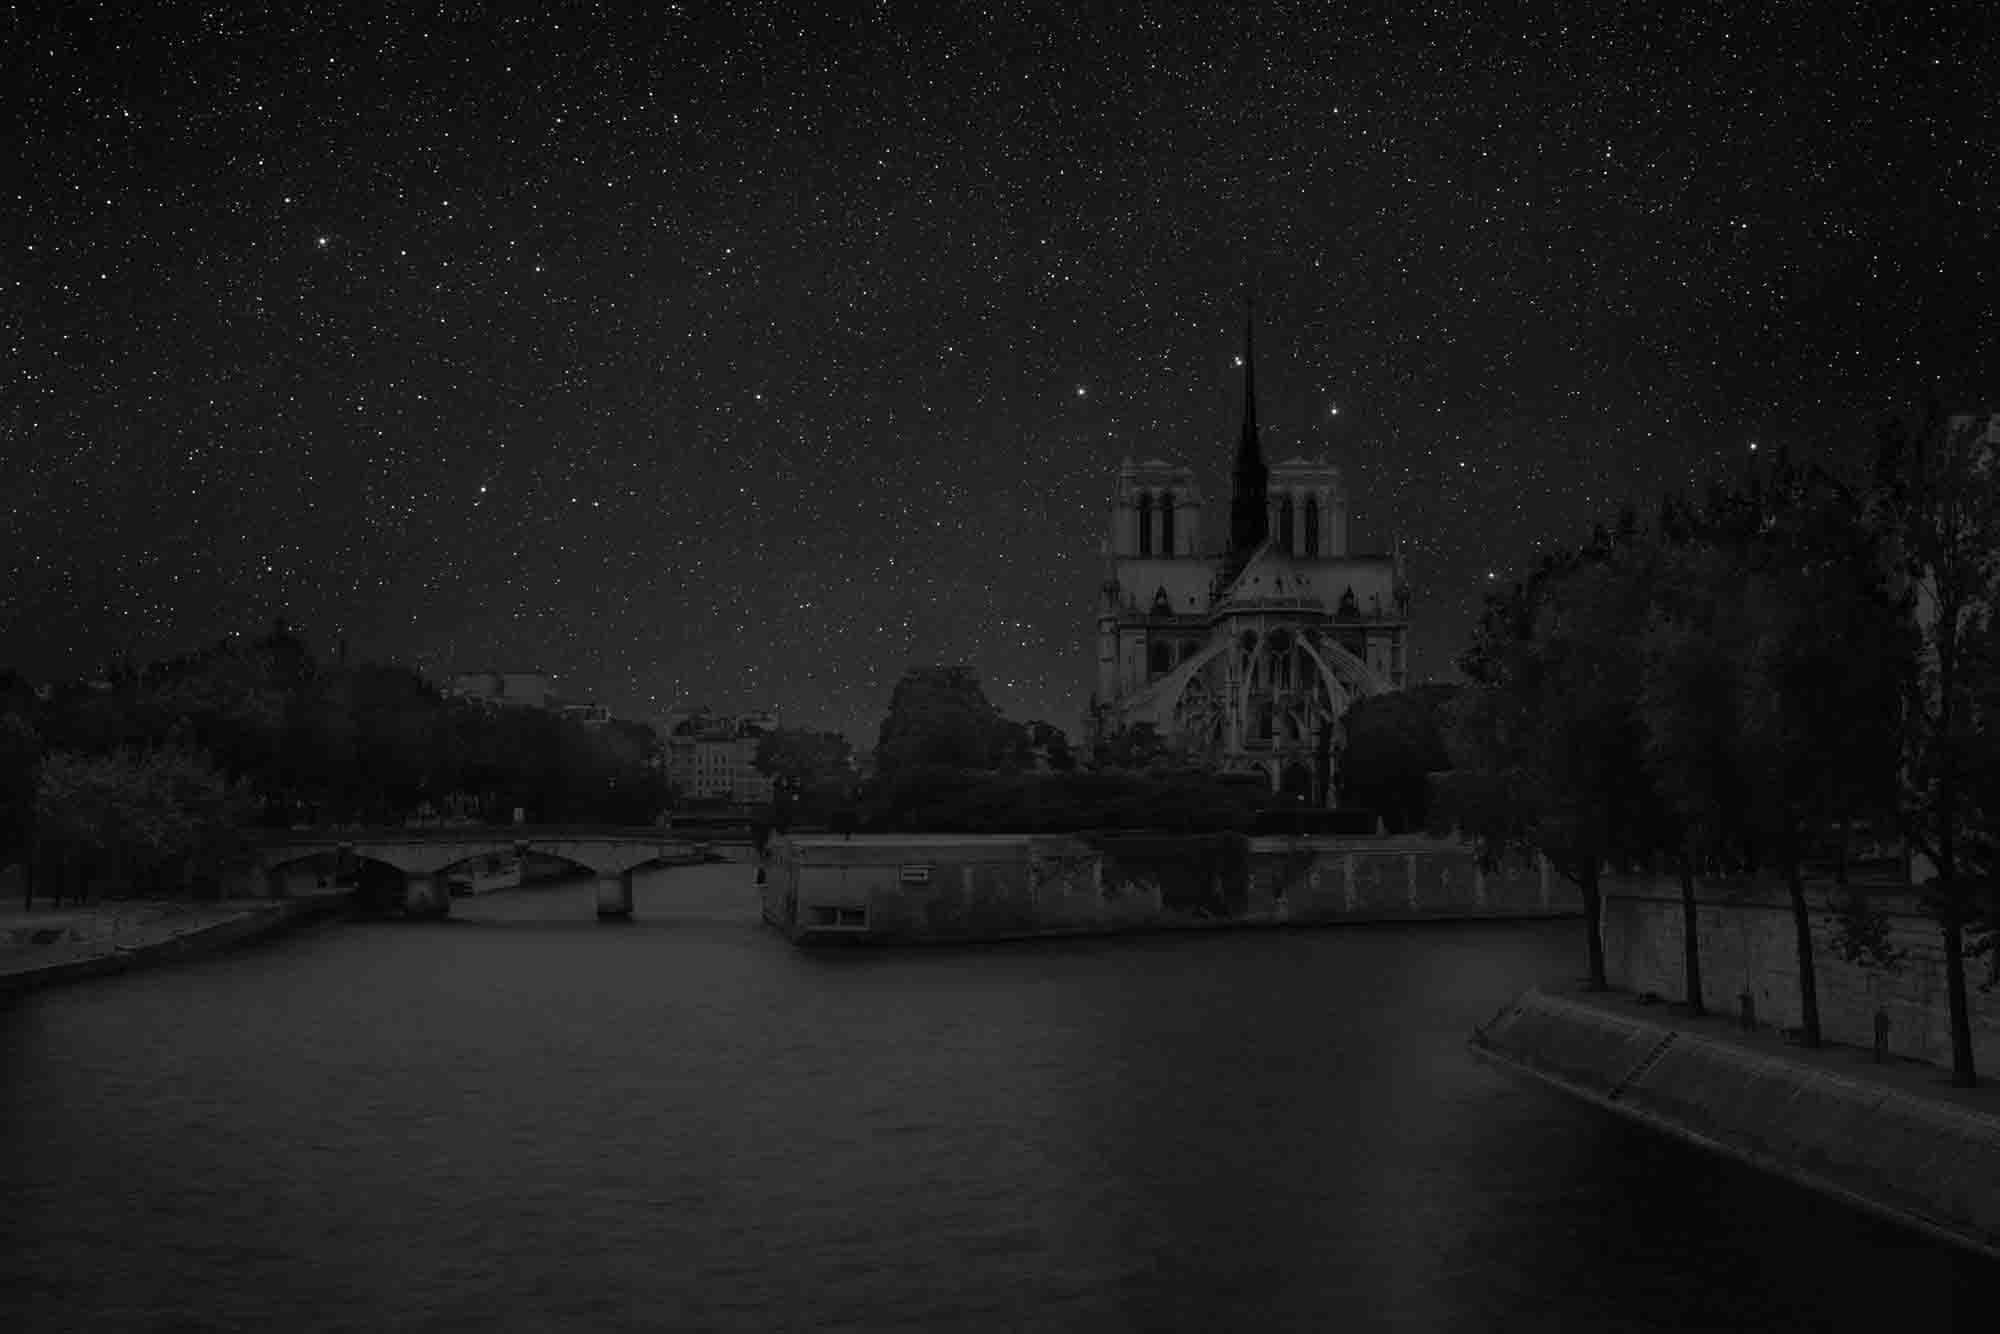 Paris 48° 51' 03'' N 2012-07-19 lst 19:46<br/>Darkened Cities - Villes éteintes